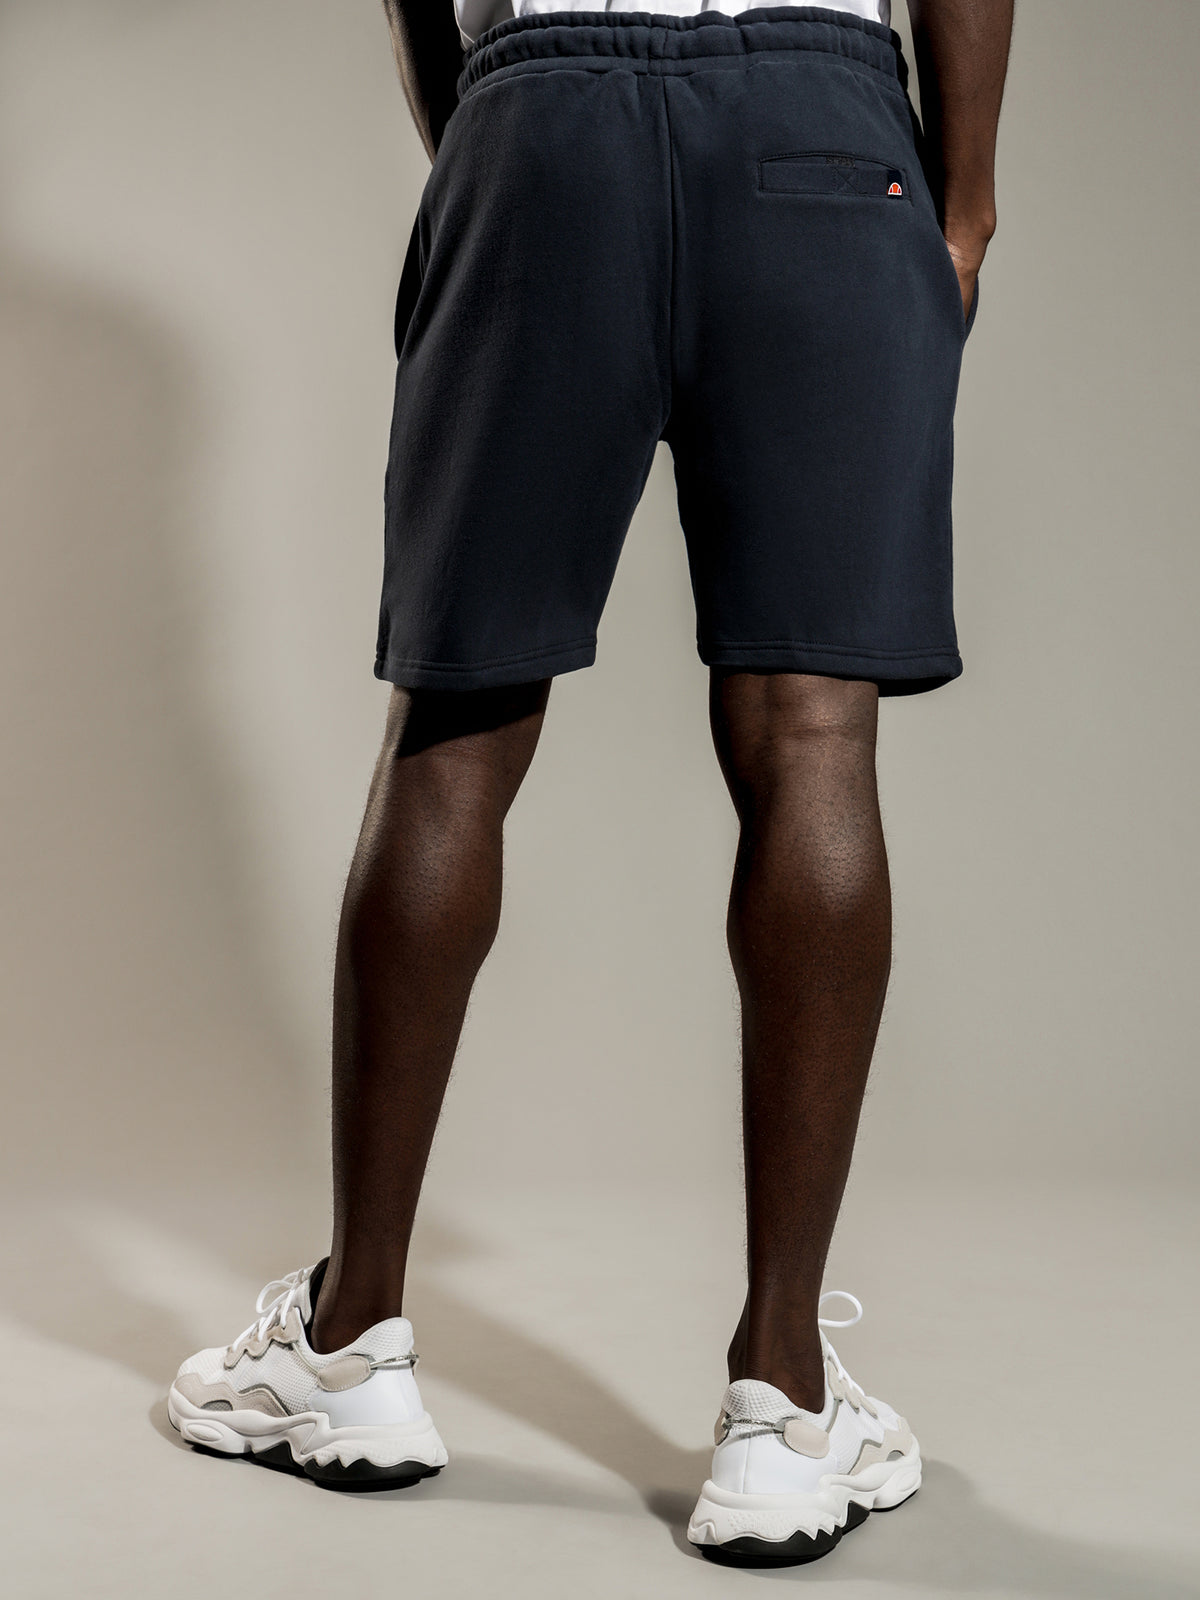 Bossini Fleece Shorts in Navy